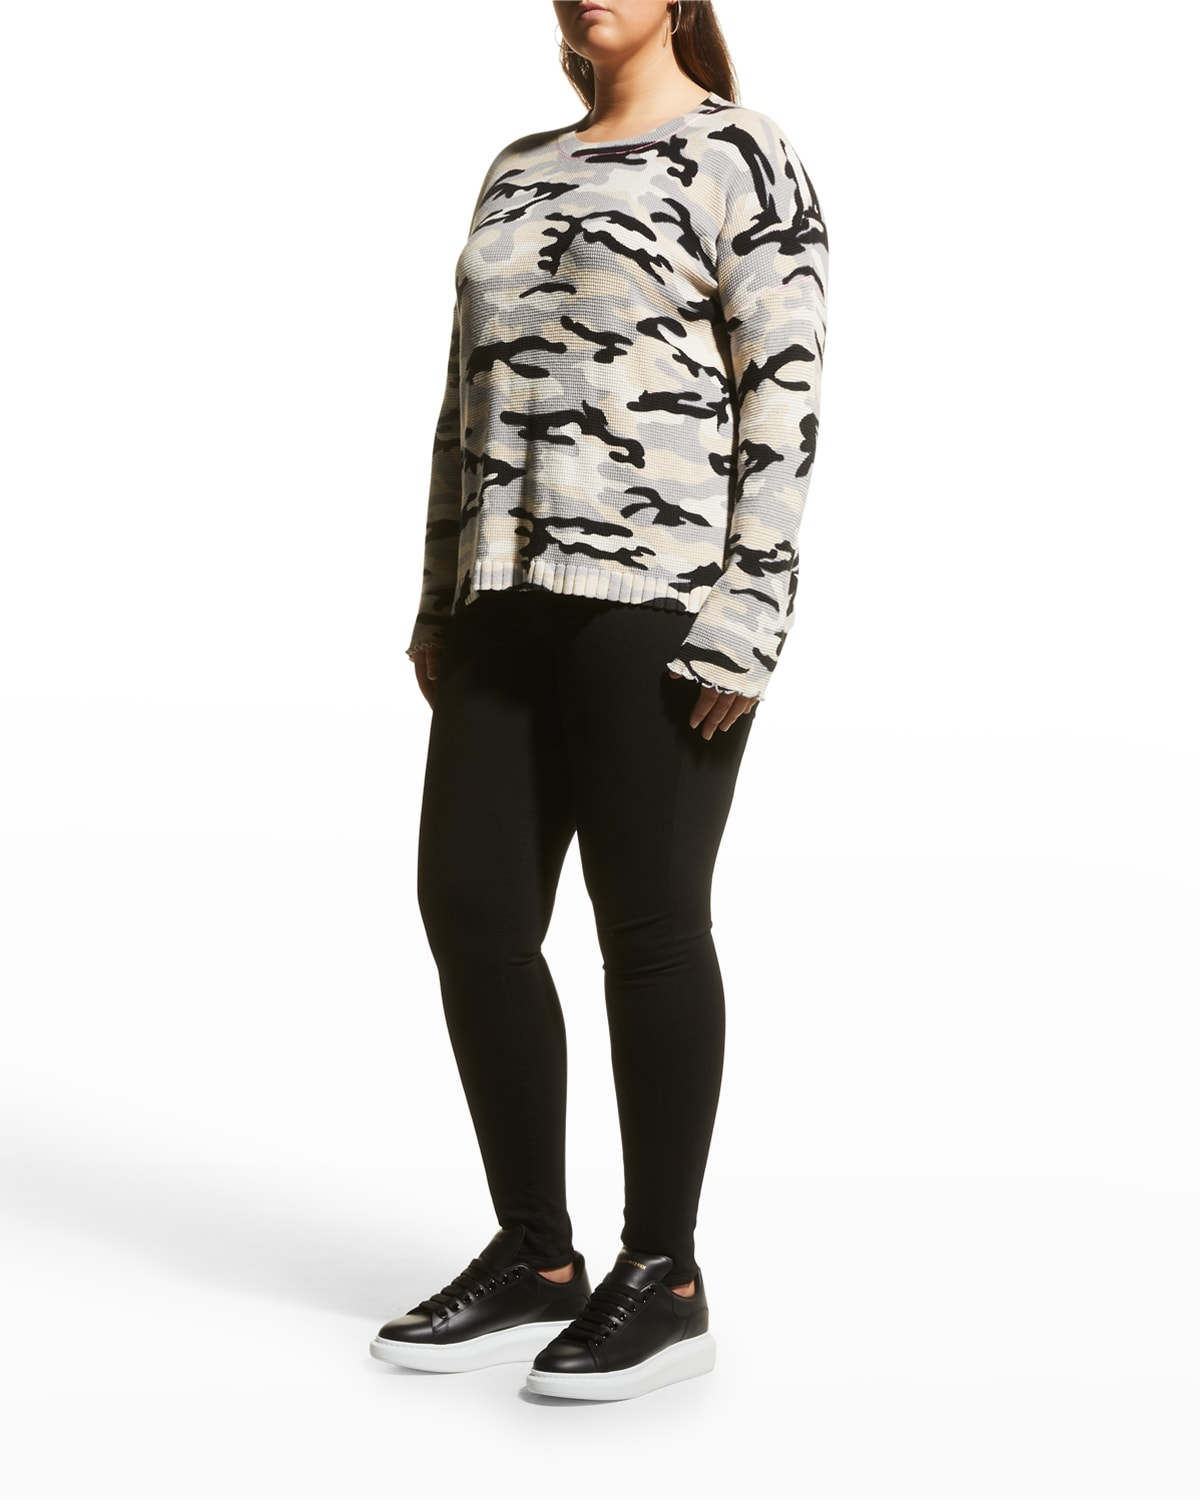 Plus Size Out of Sight Camo Sweater